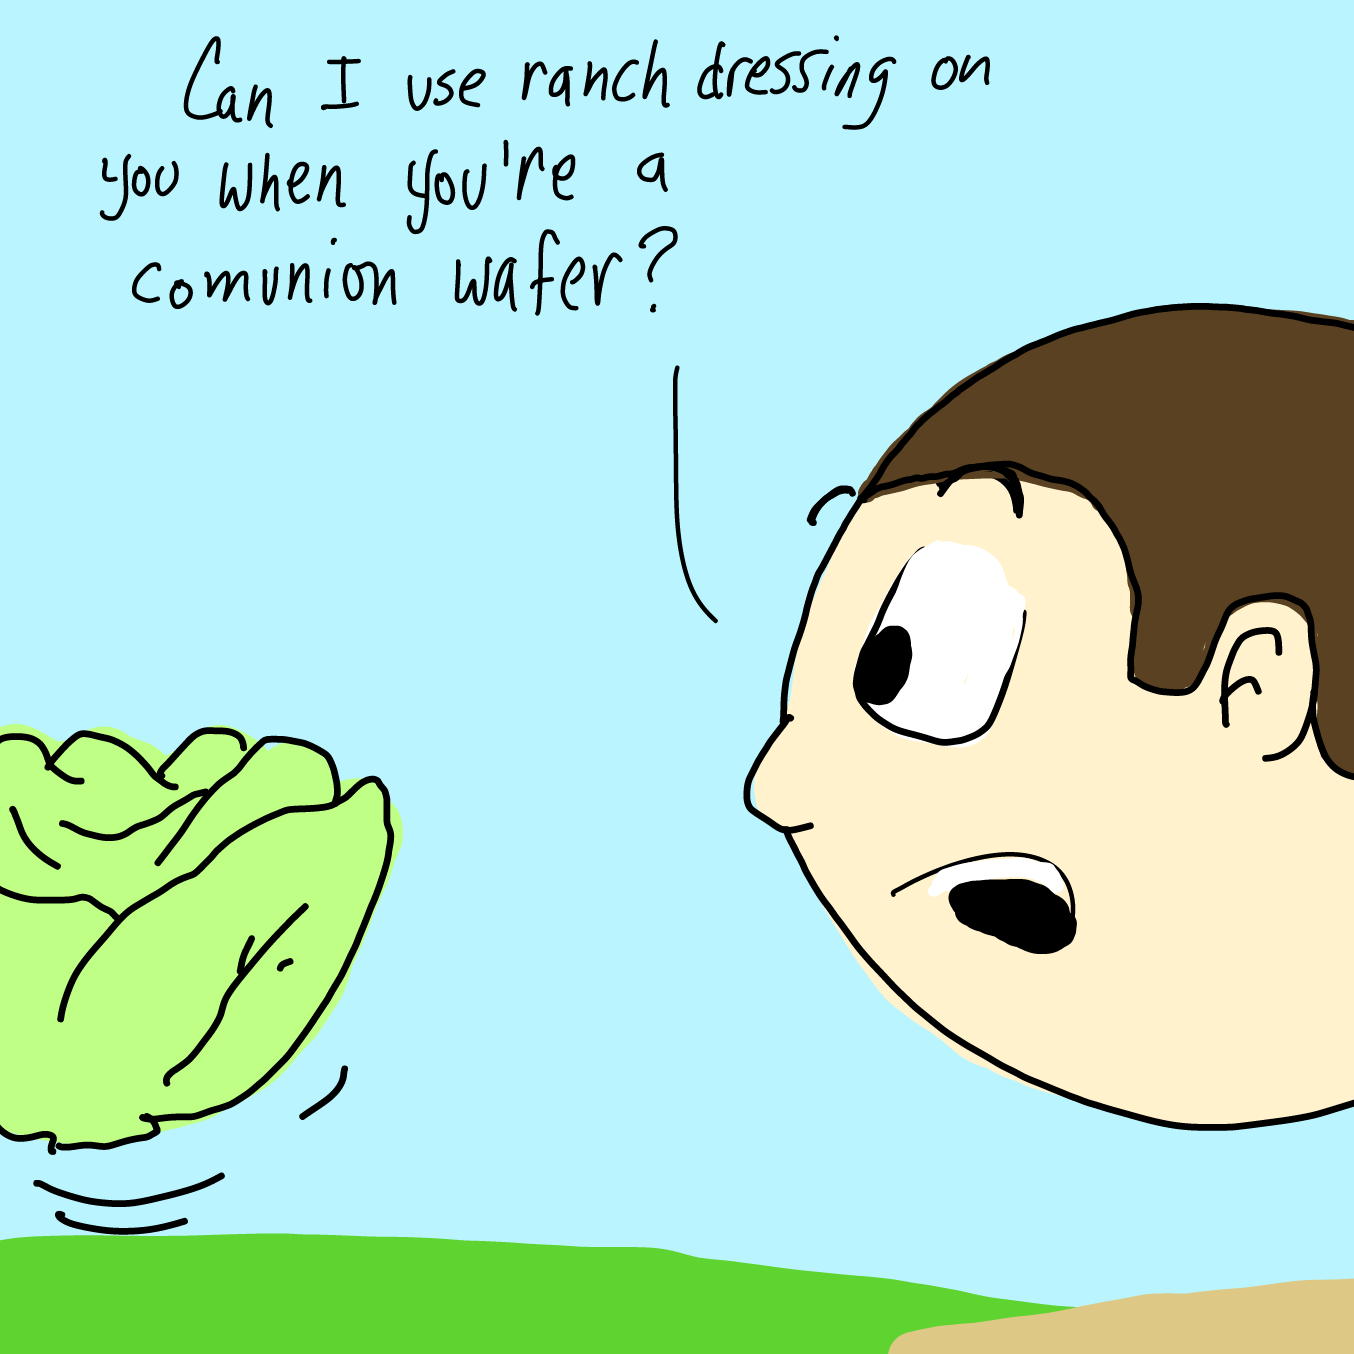 Drawing in Floating Lettuce by WizardCroissant